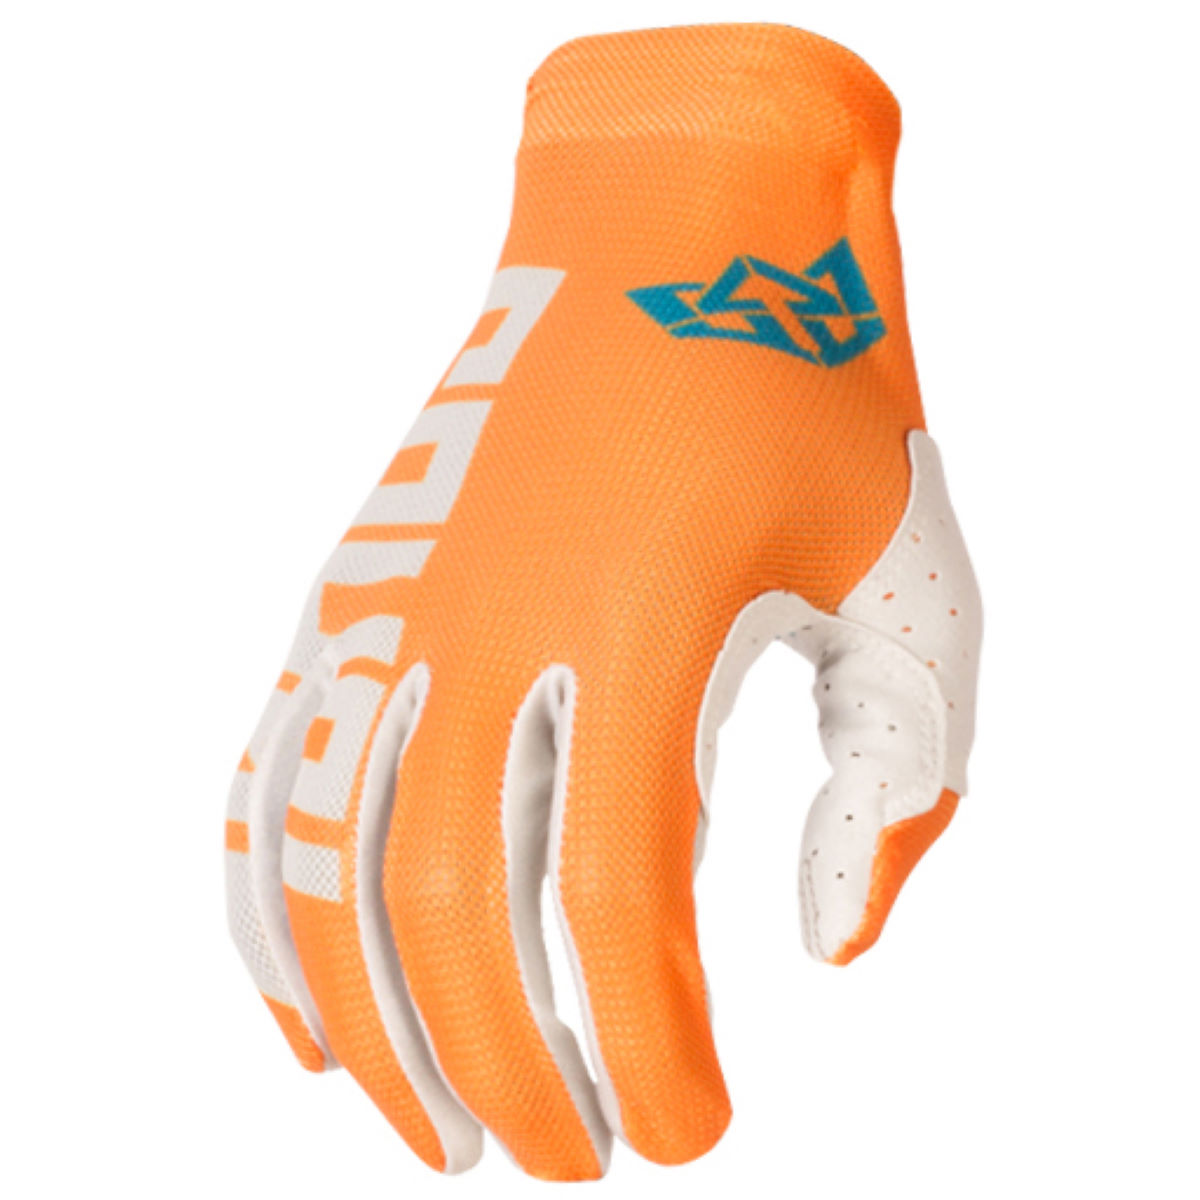 Royal Victory Gloves - Guantes largos